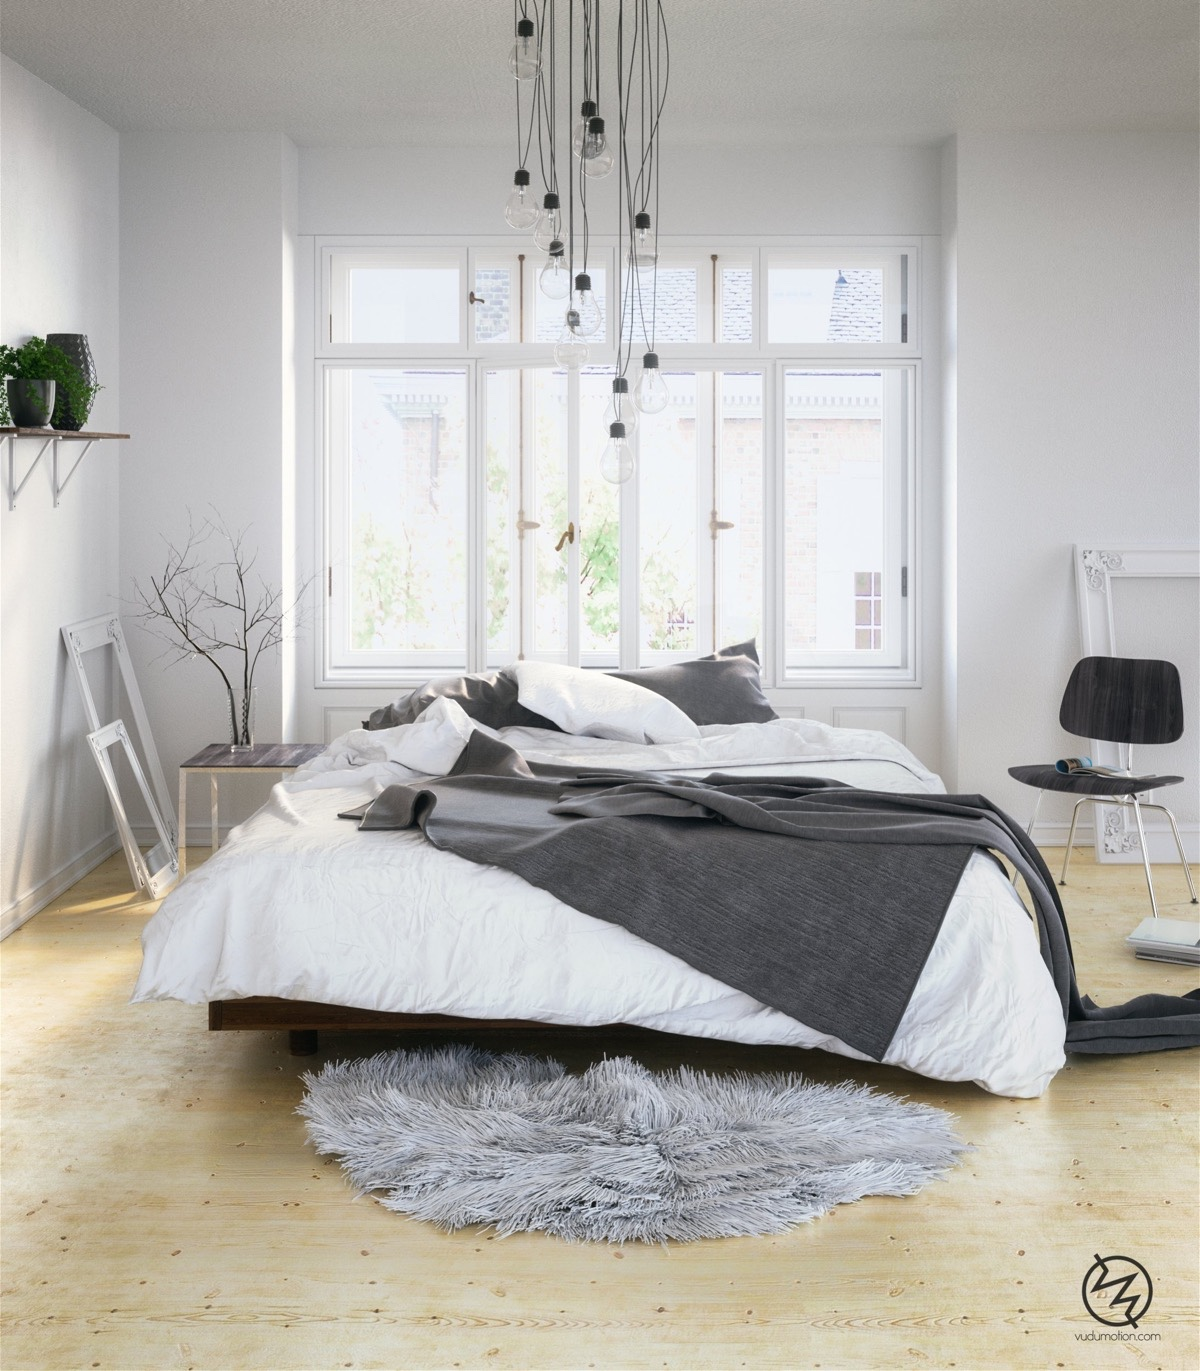 scandinavian bedrooms ideas and inspiration - Bedrooms Ideas